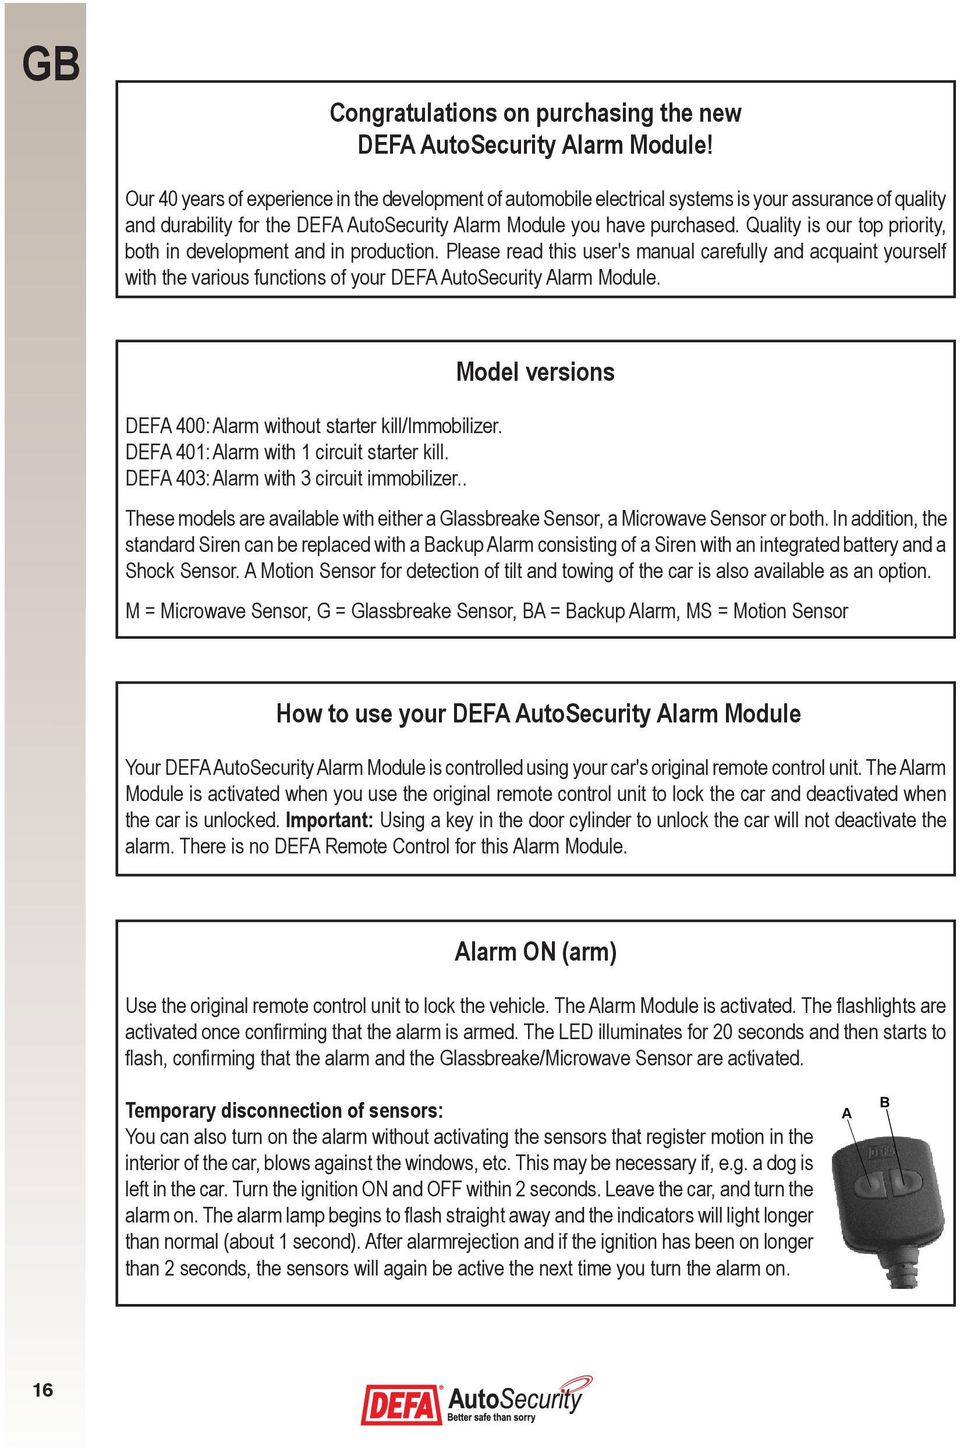 Quality is our top priority, both in development and in production. Please read this user's manual carefully and acquaint yourself with the various functions of your DEFA AutoSecurity Alarm Module.